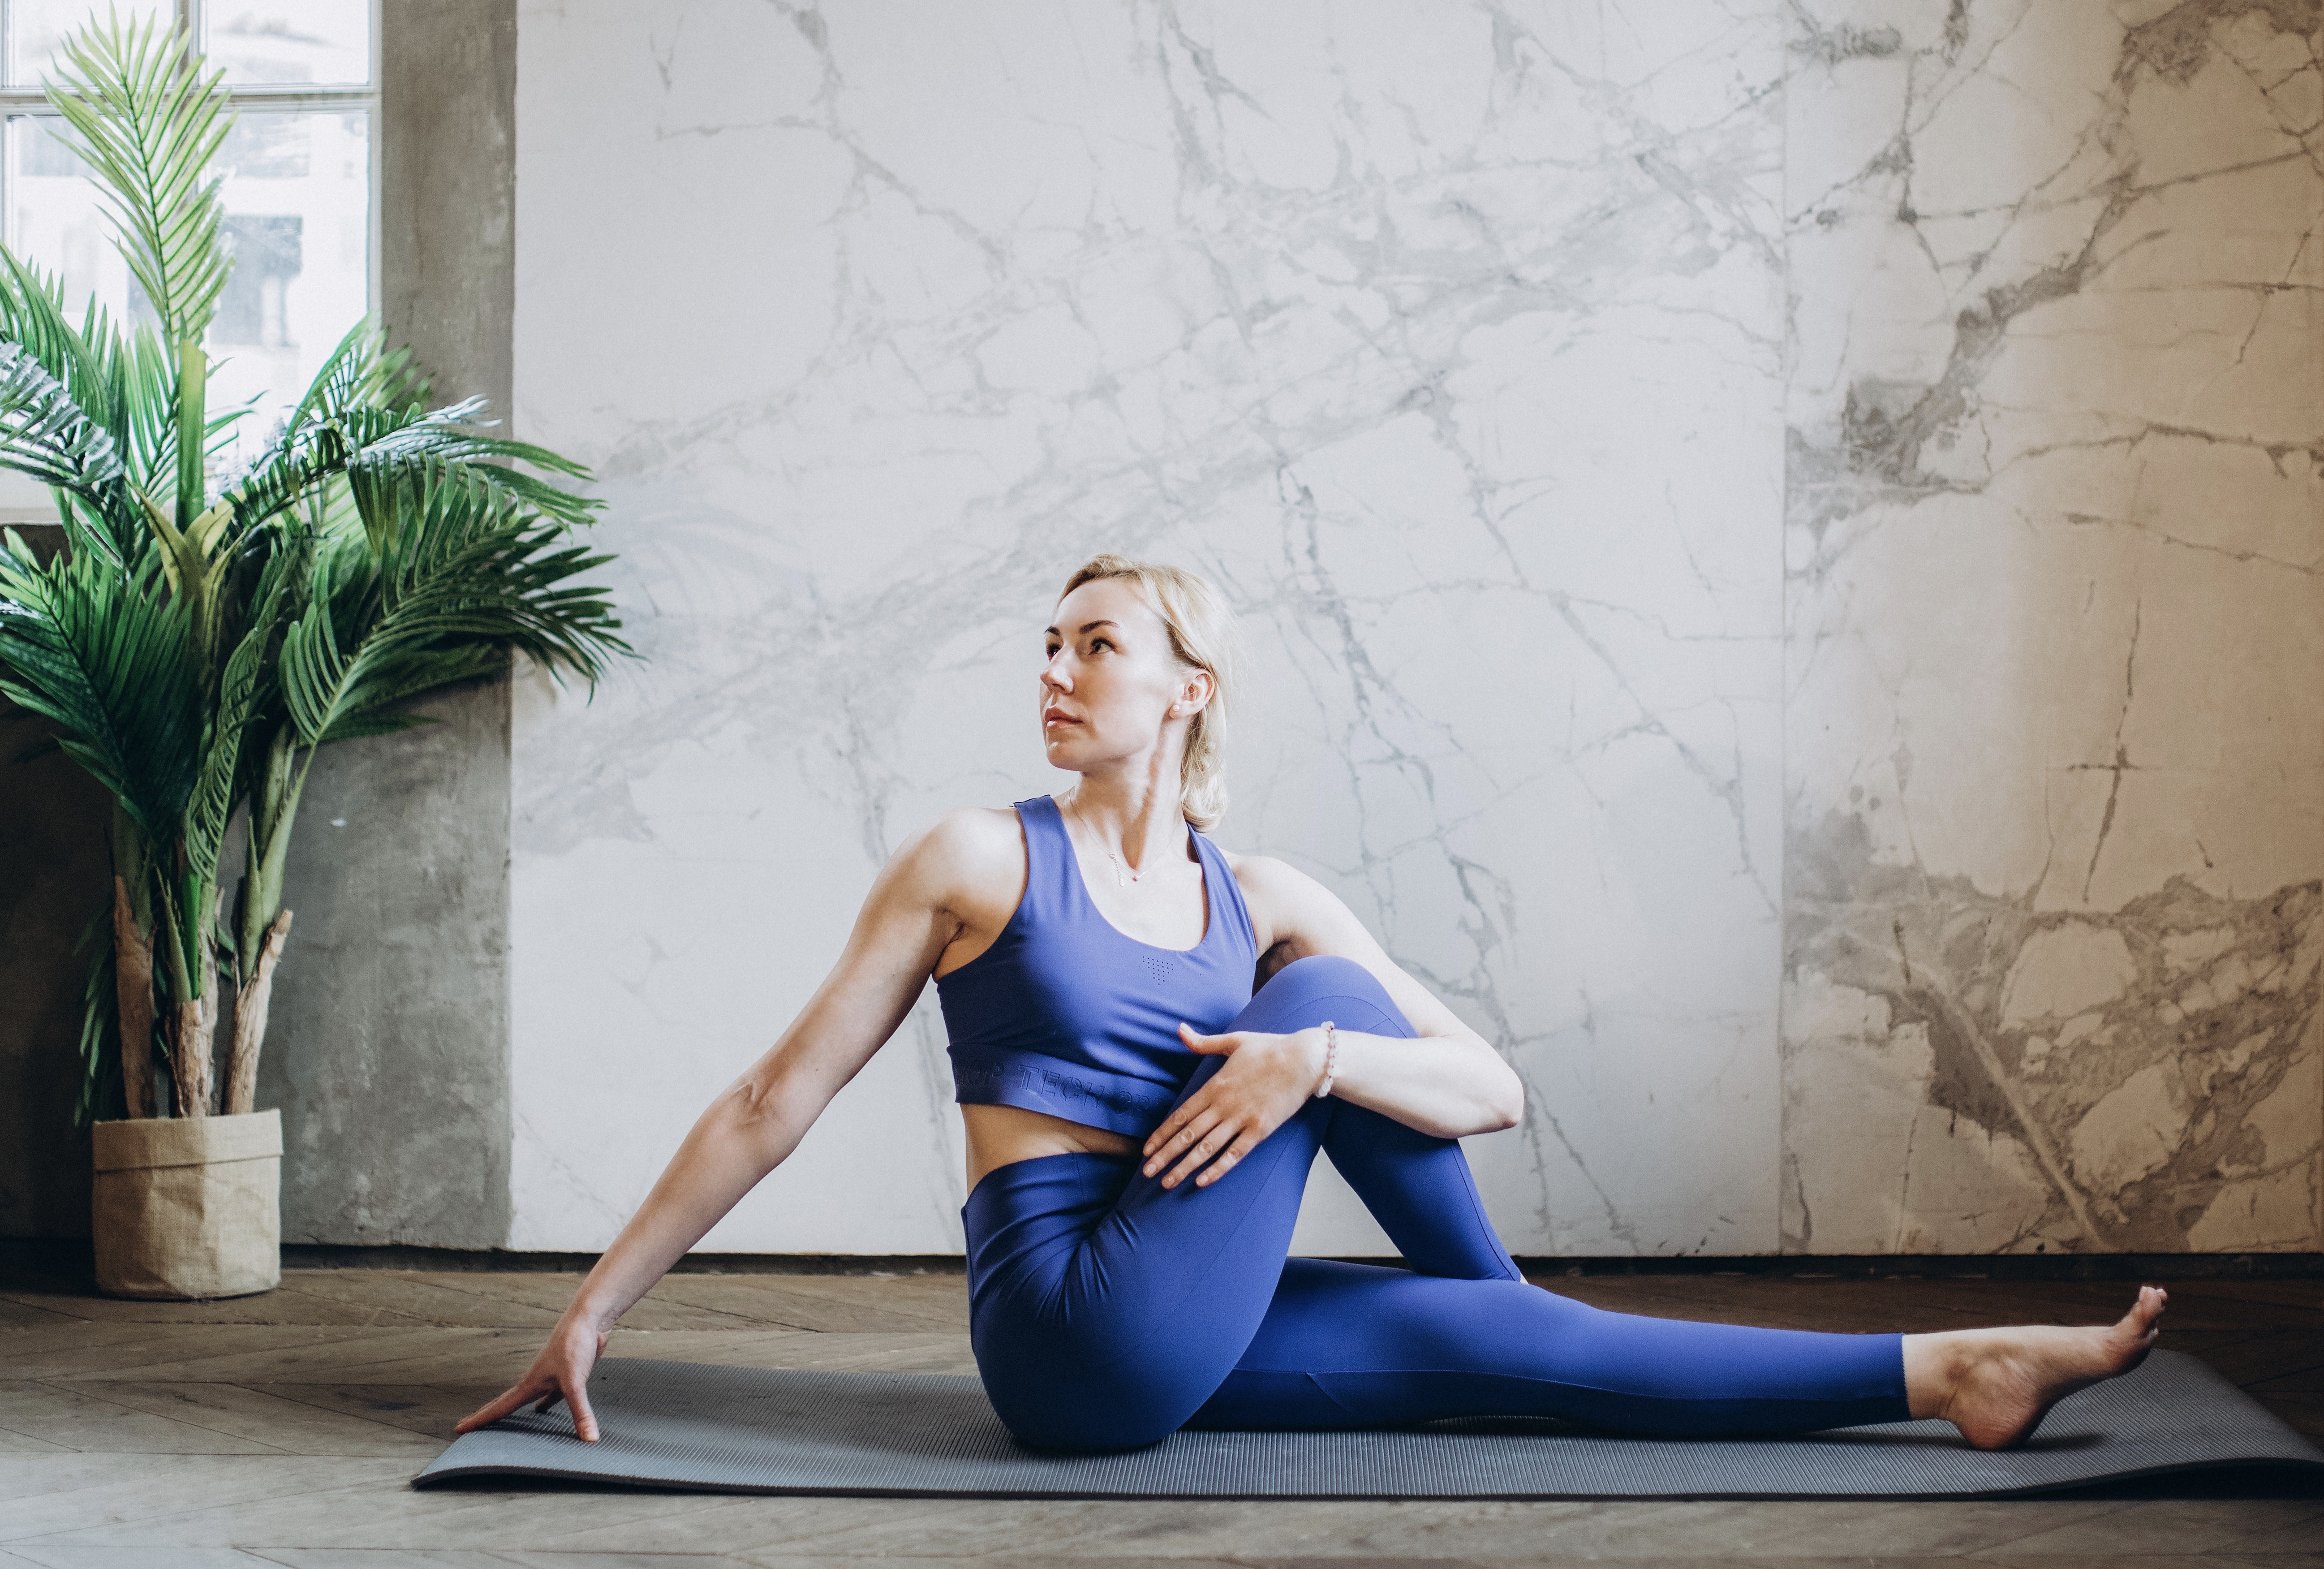 If you want to exercise after an IBS flare-up, yoga is a good option.